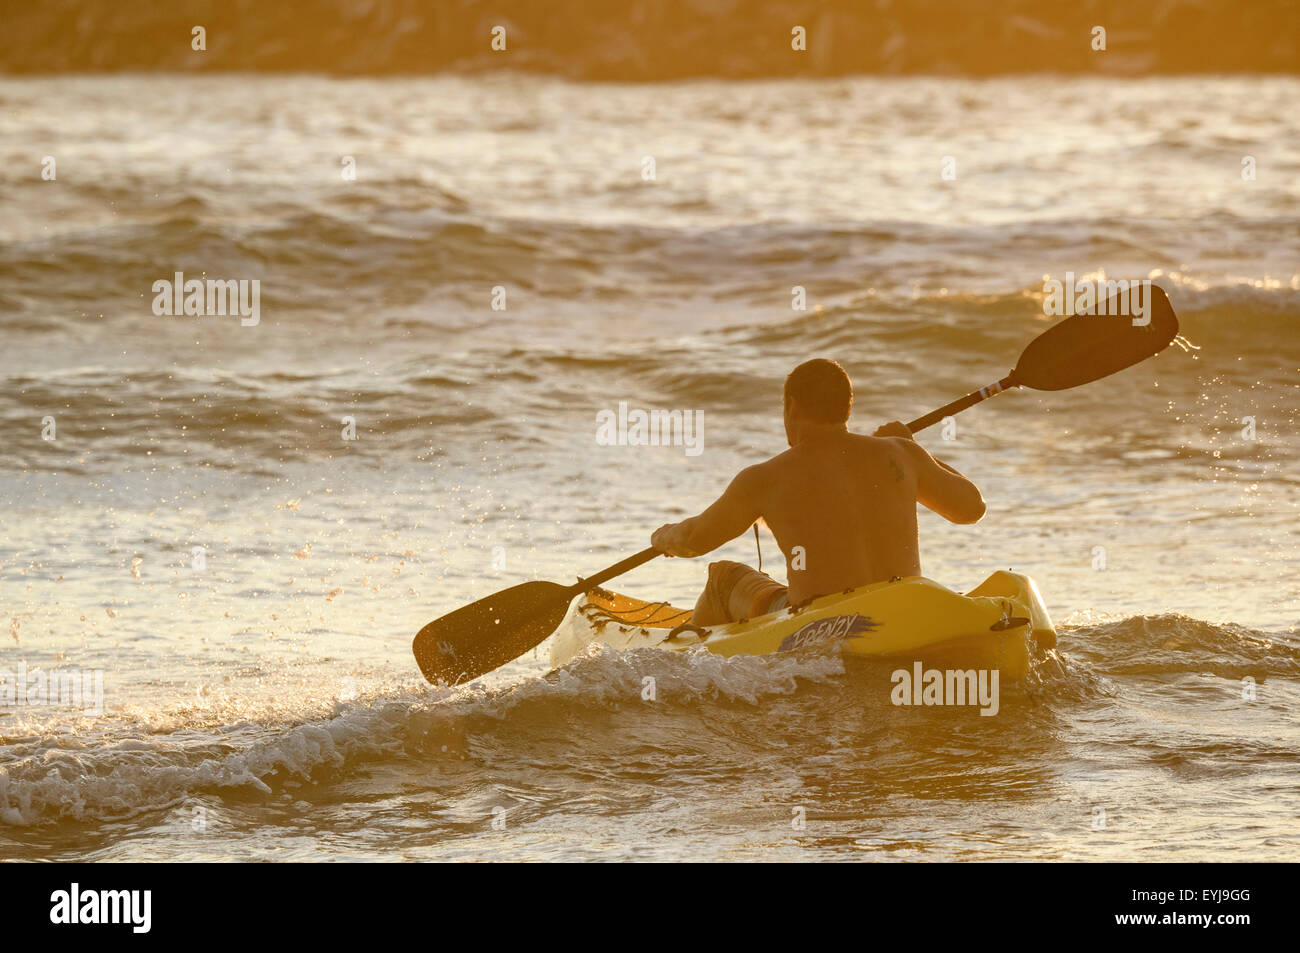 Man kayaking in surf at Ocean Beach, CA - Stock Image